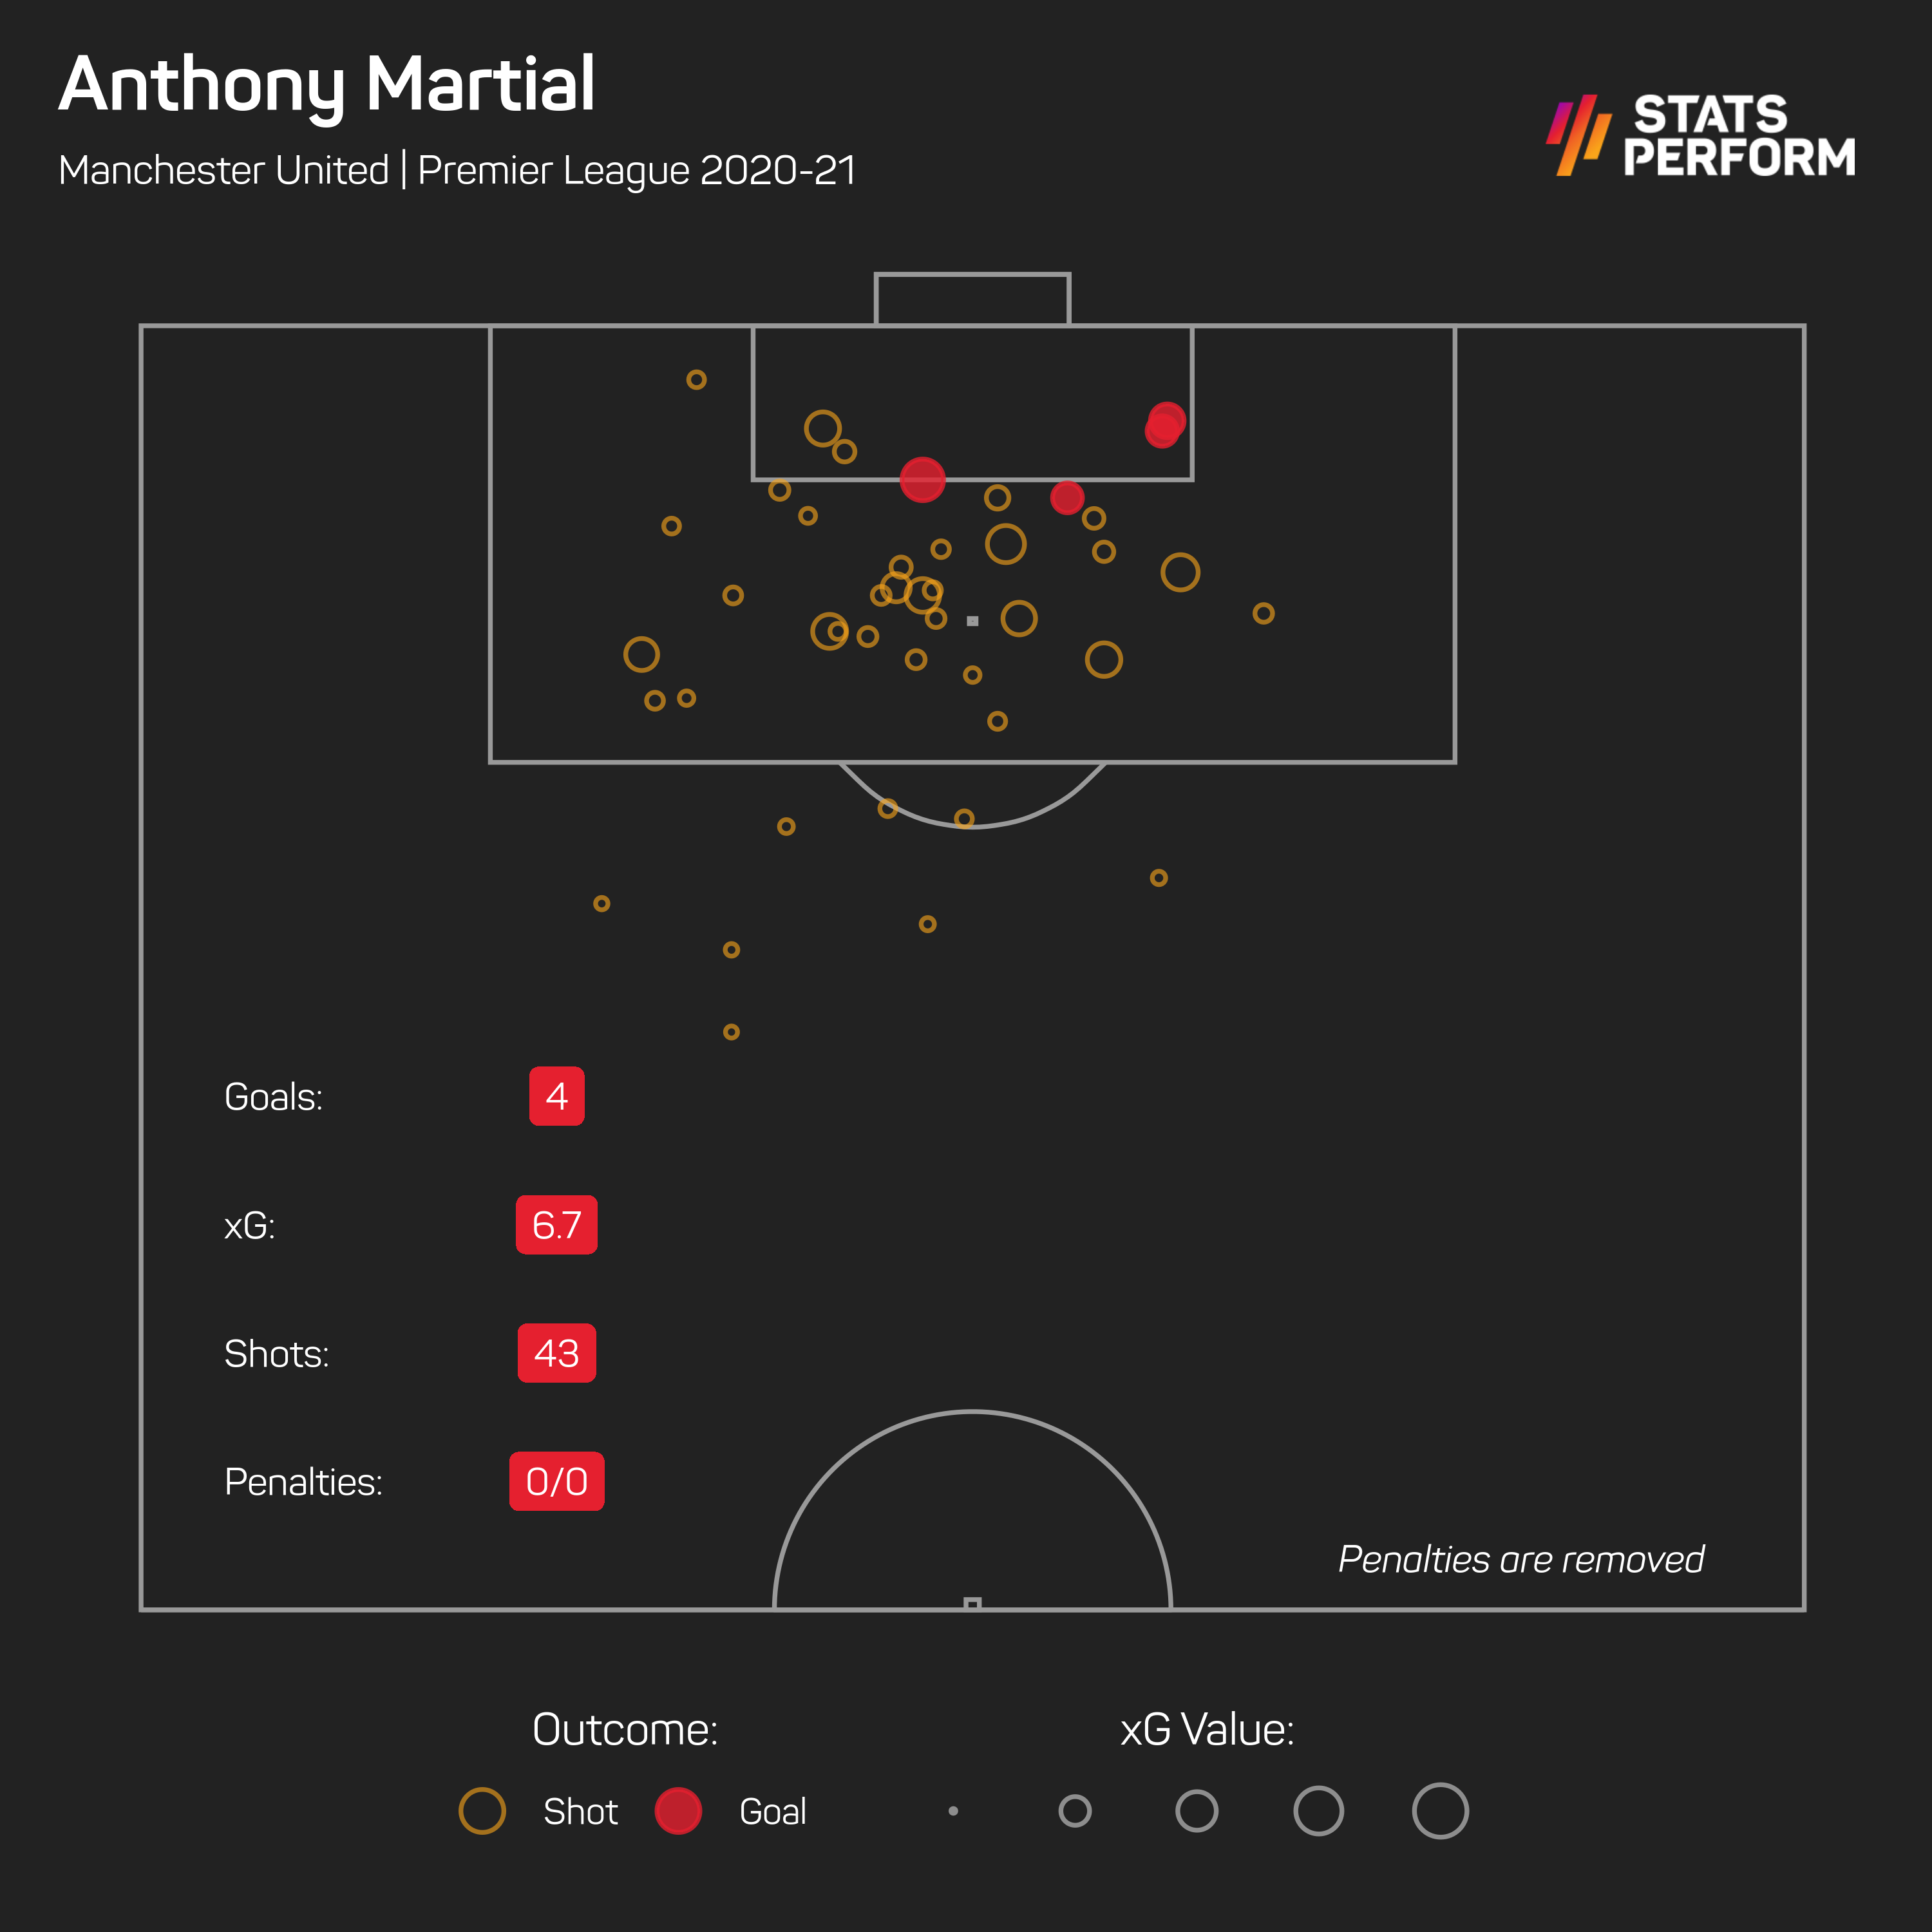 Martial's form before his injury was underwhelming